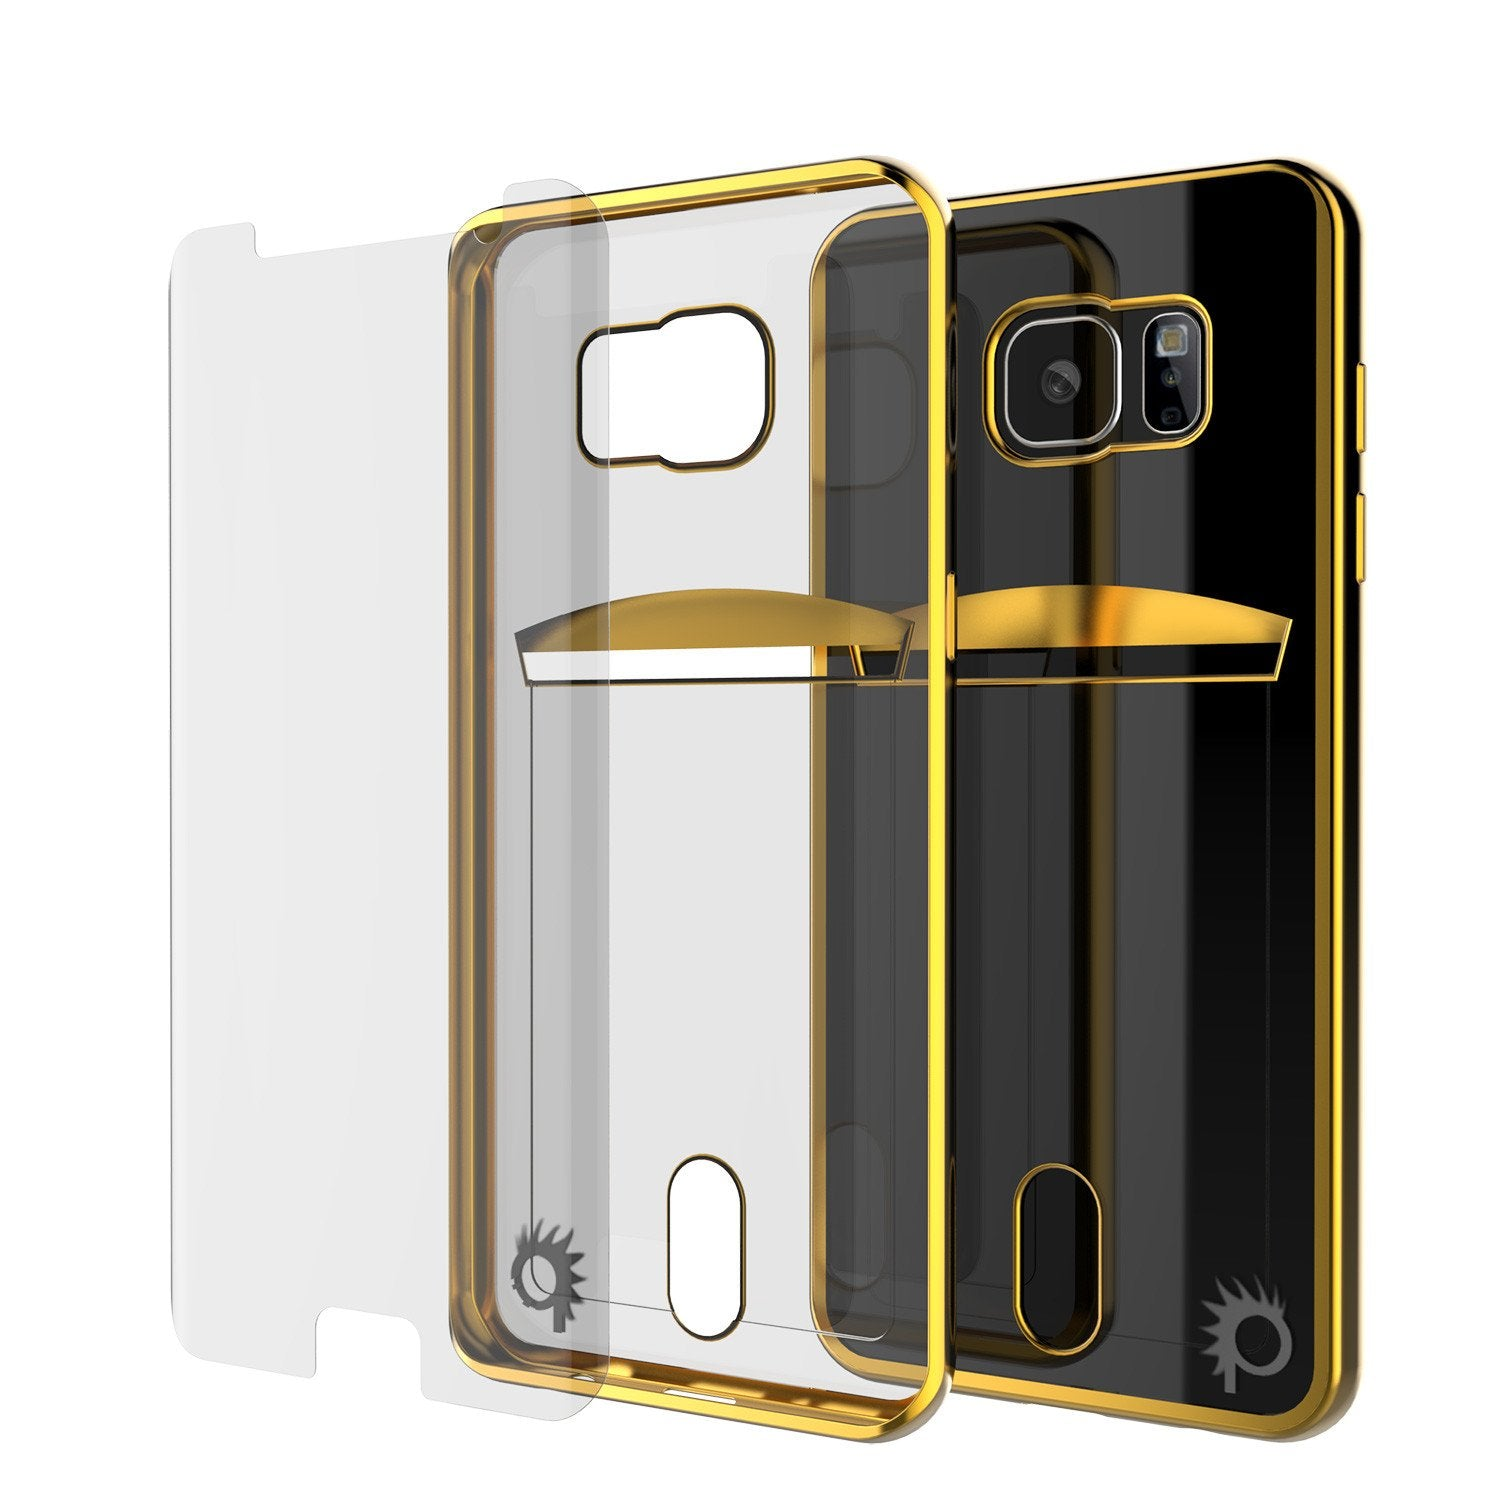 Galaxy S6 EDGE Case, PUNKCASE® LUCID Gold Series | Card Slot | SHIELD Screen Protector | Ultra fit - PunkCase NZ